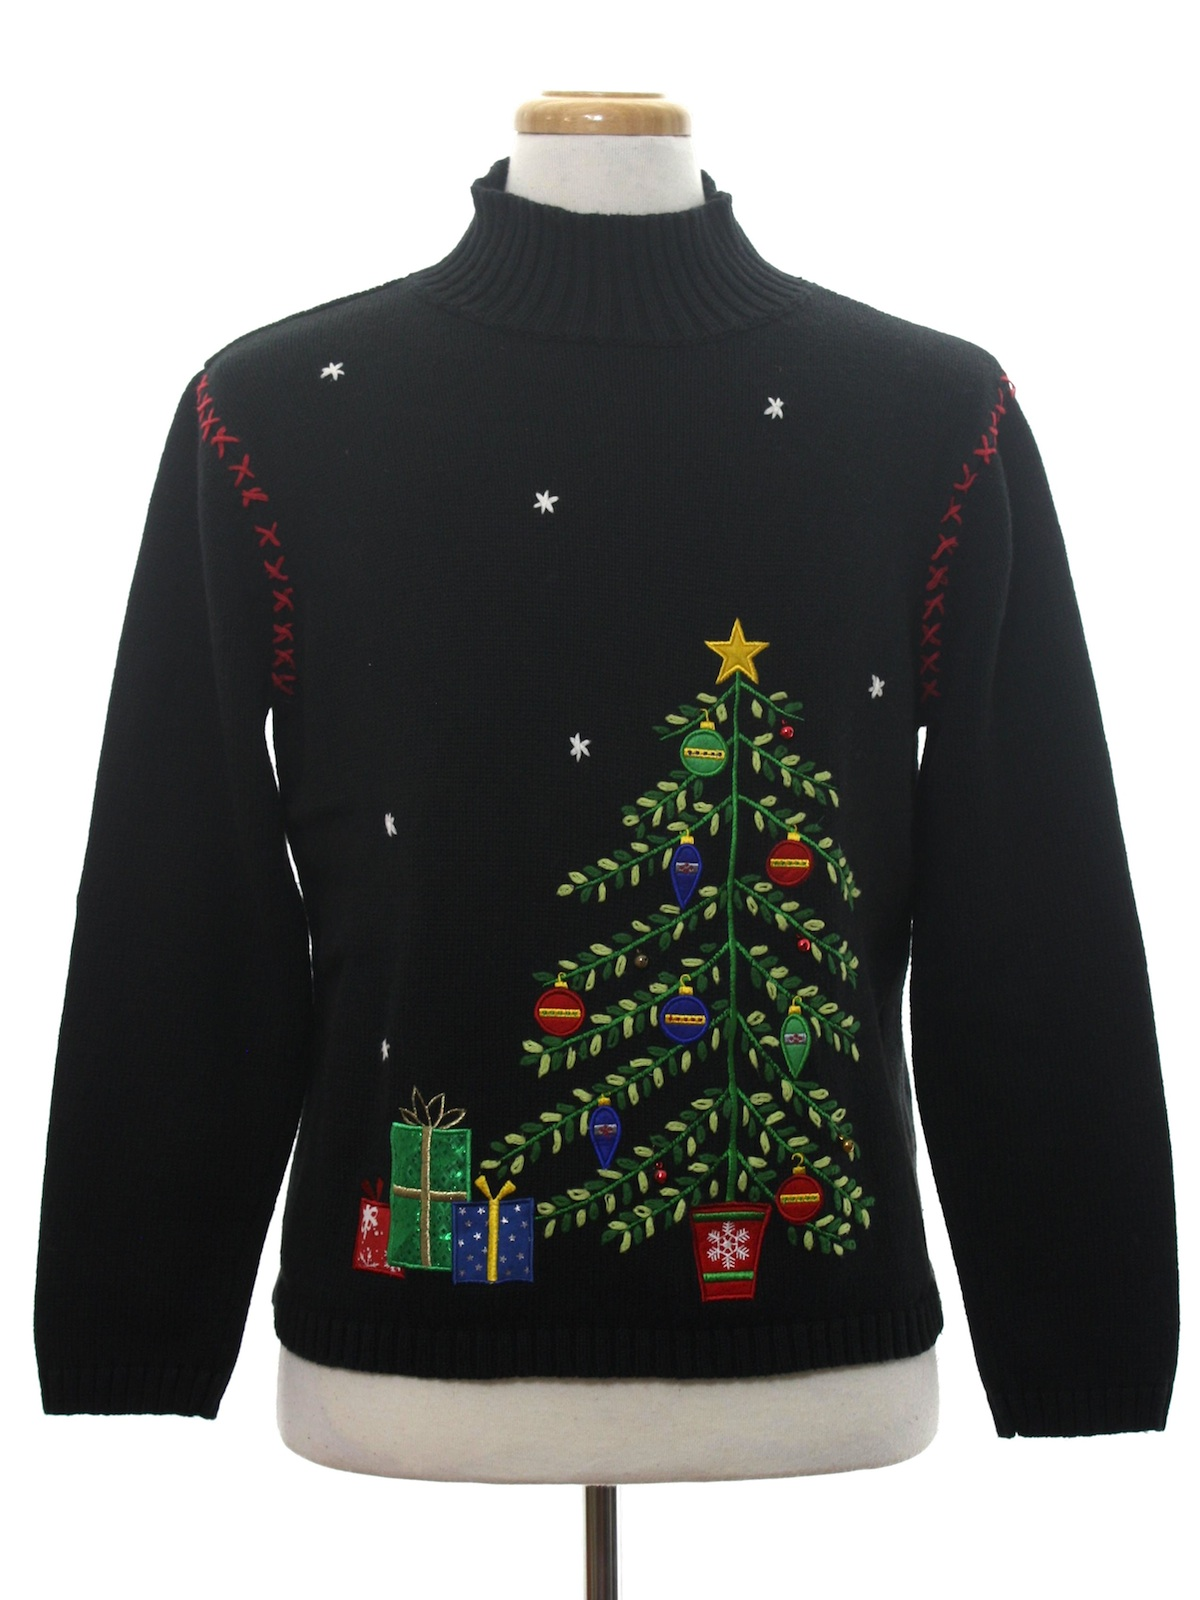 Womens Ugly Christmas Sweater: -Classic Elements- Womens ...